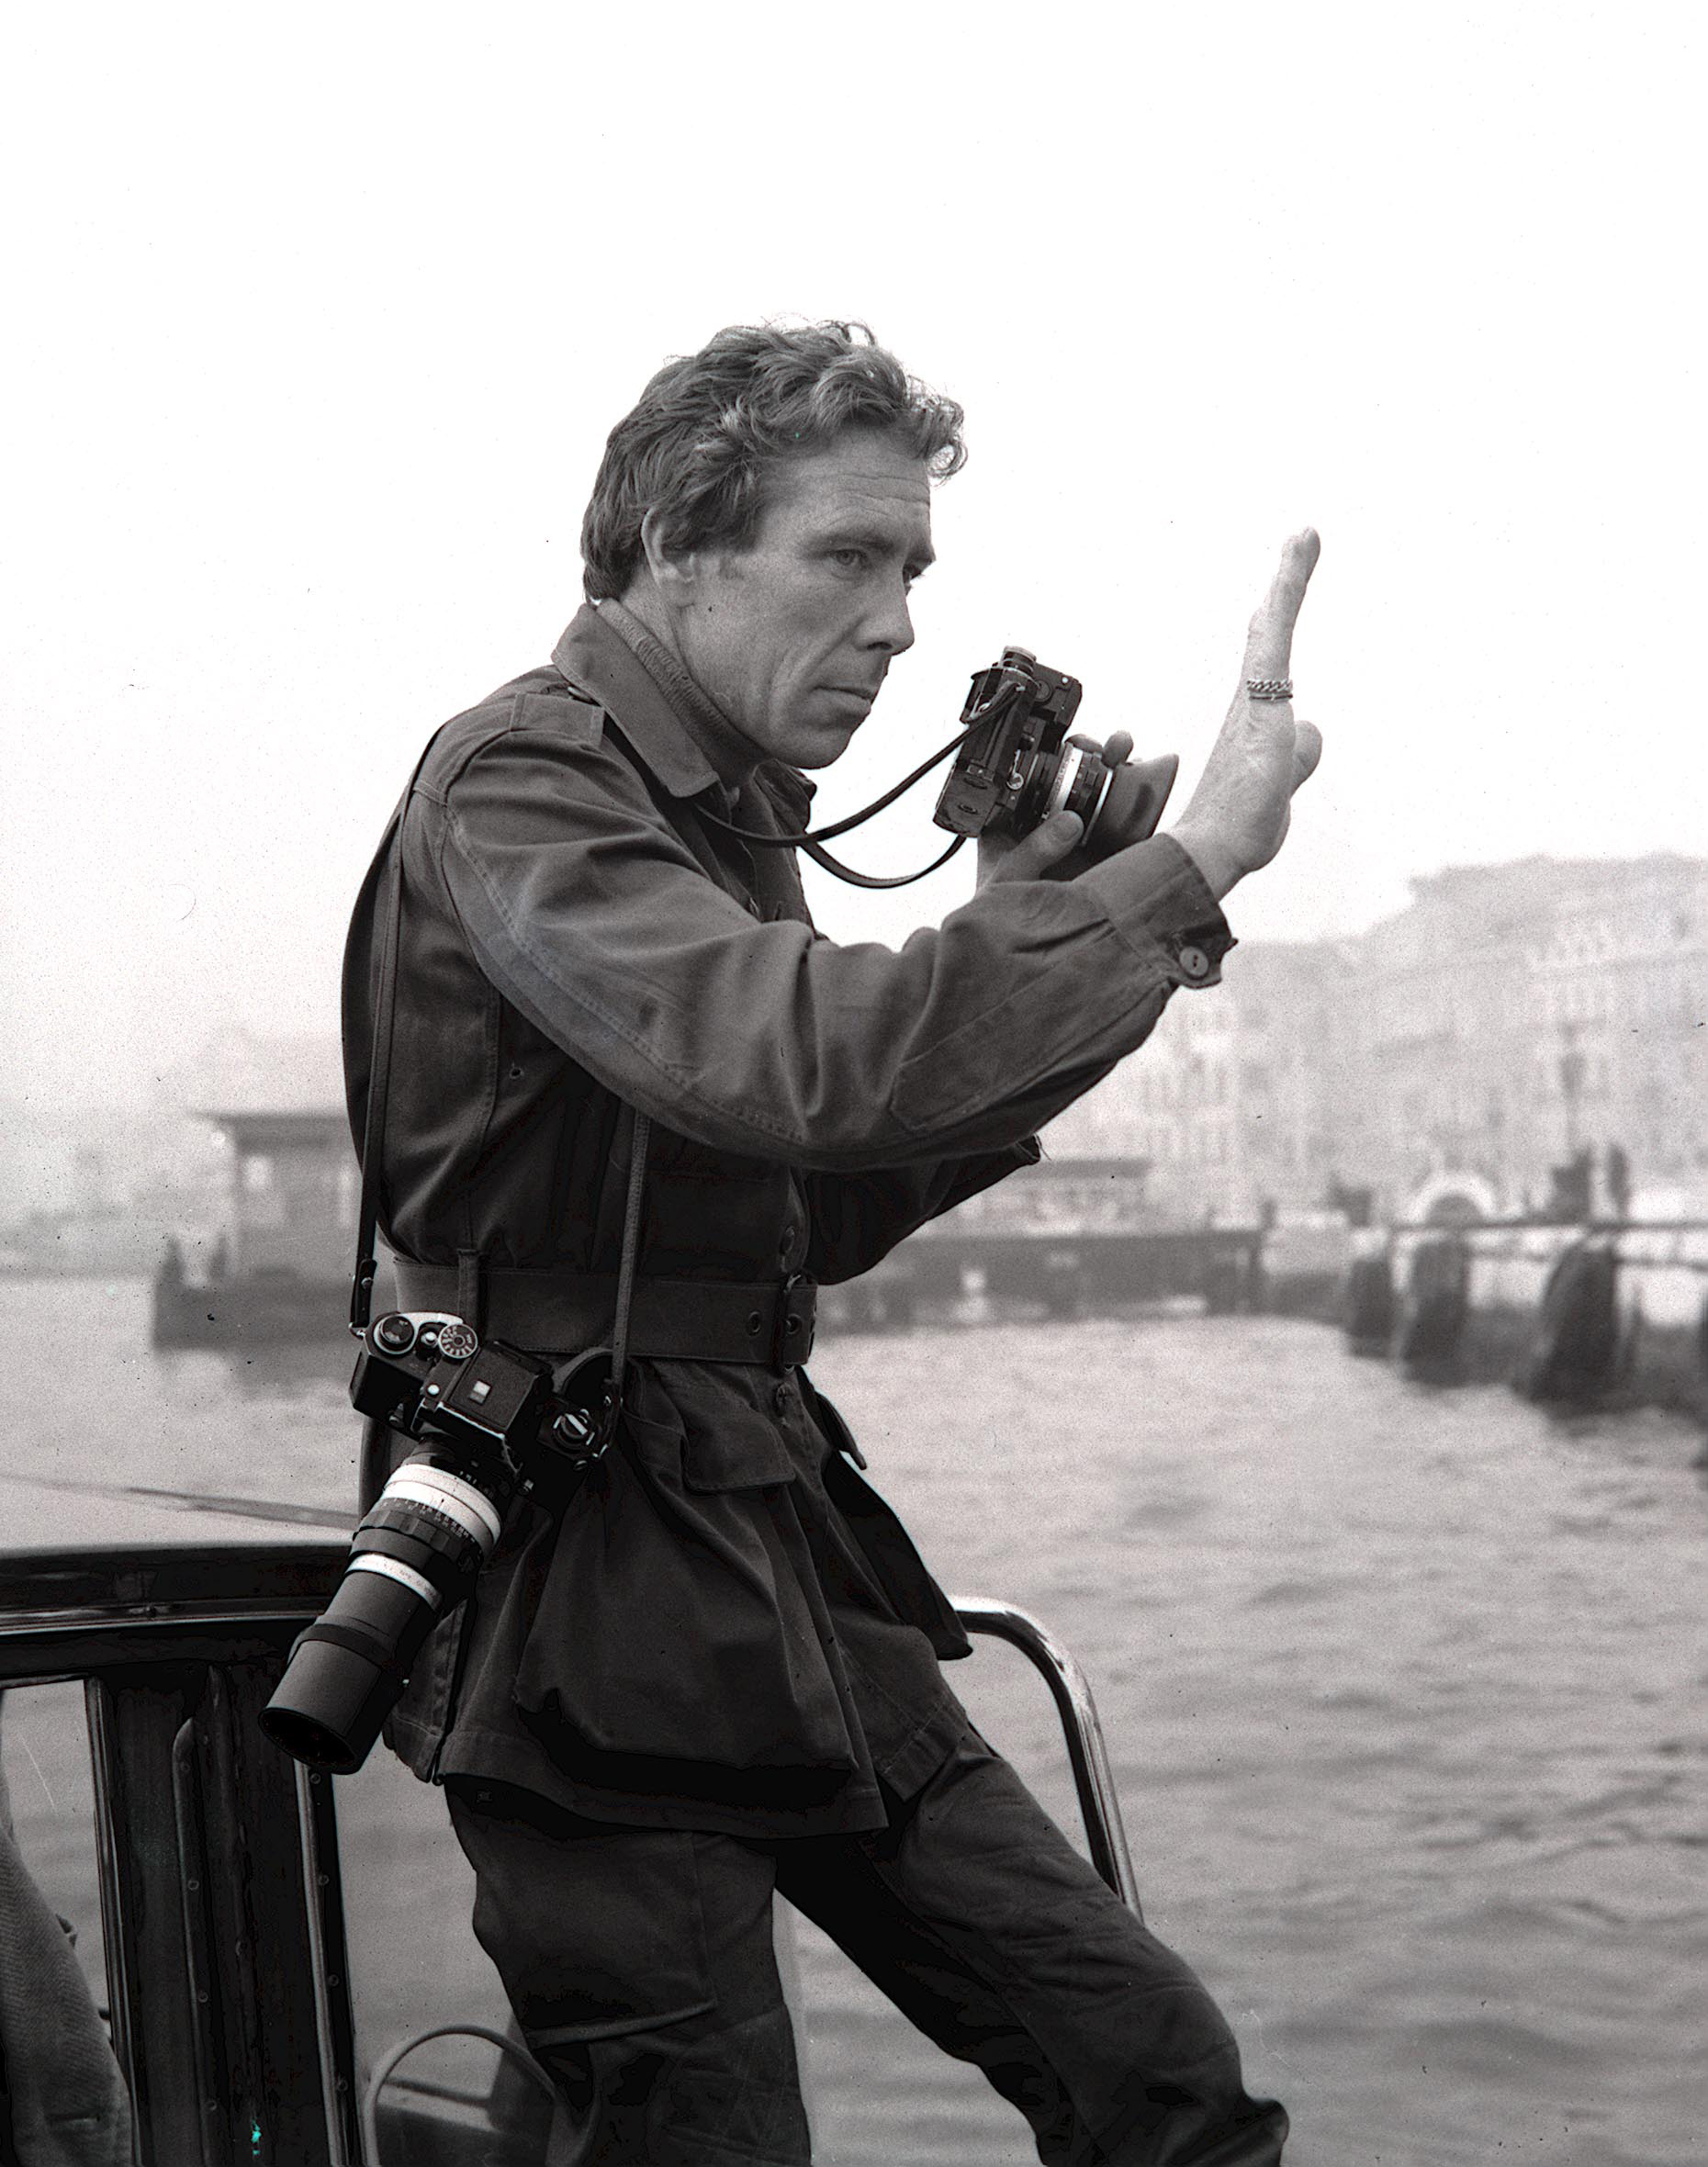 Photographer Lord Snowdon, husband of Princess Margaret, pictured at work in Venice, Italy on Oct. 14, 1971.